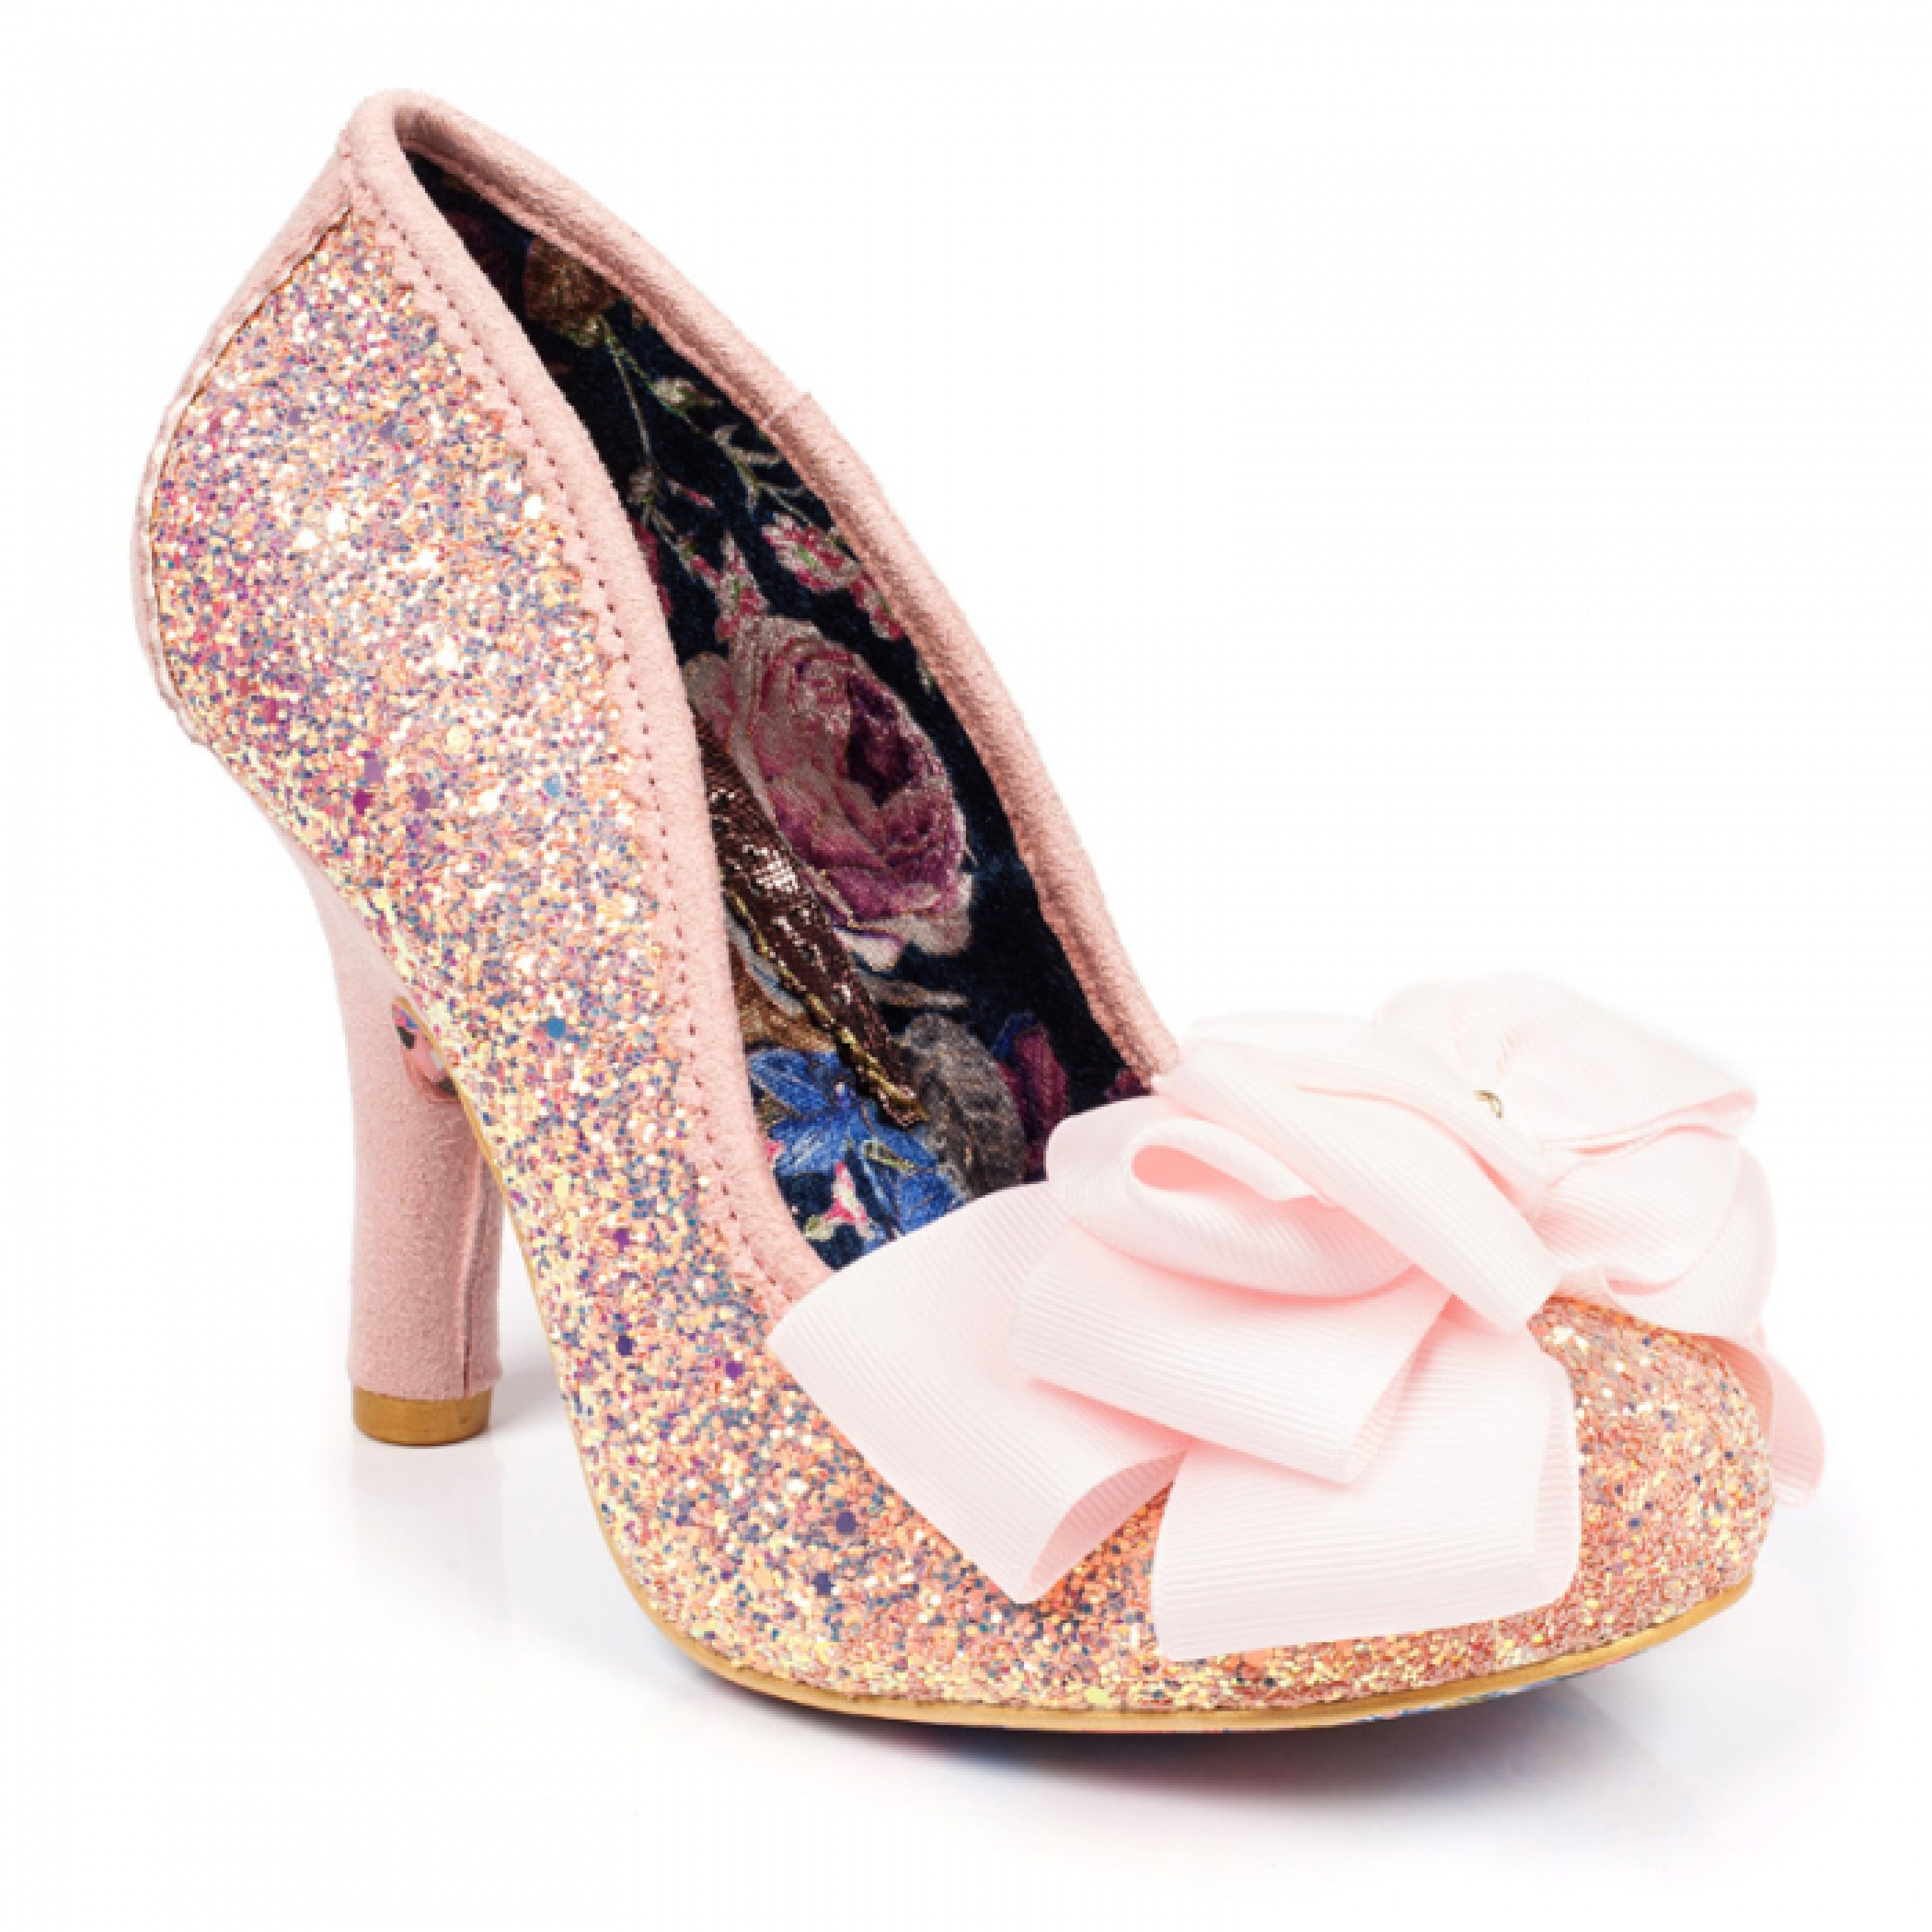 f2a2fa5f585 ☆ Irregular Choice - Ascot Heels (in Pink) ☆ | ❤ Clothes ...